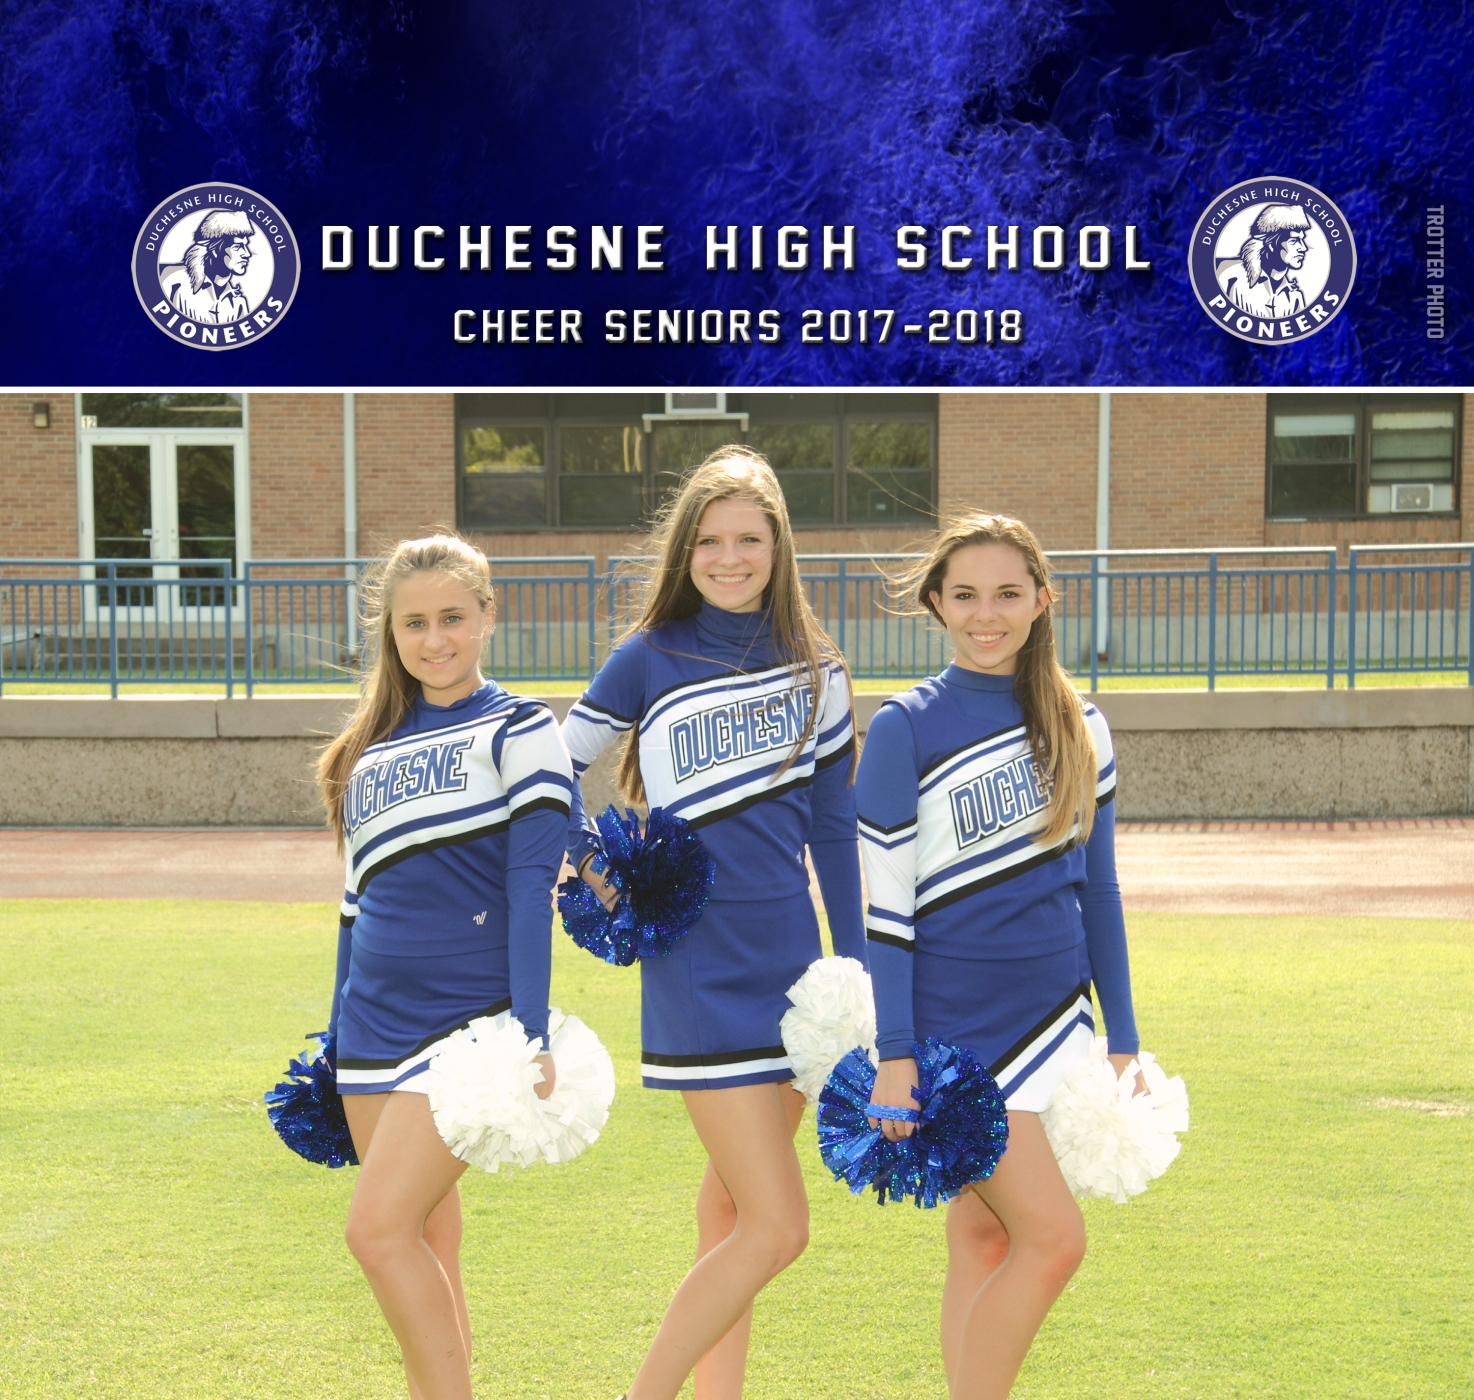 Duchesne High School House Raffle Duchesne High School Cheer